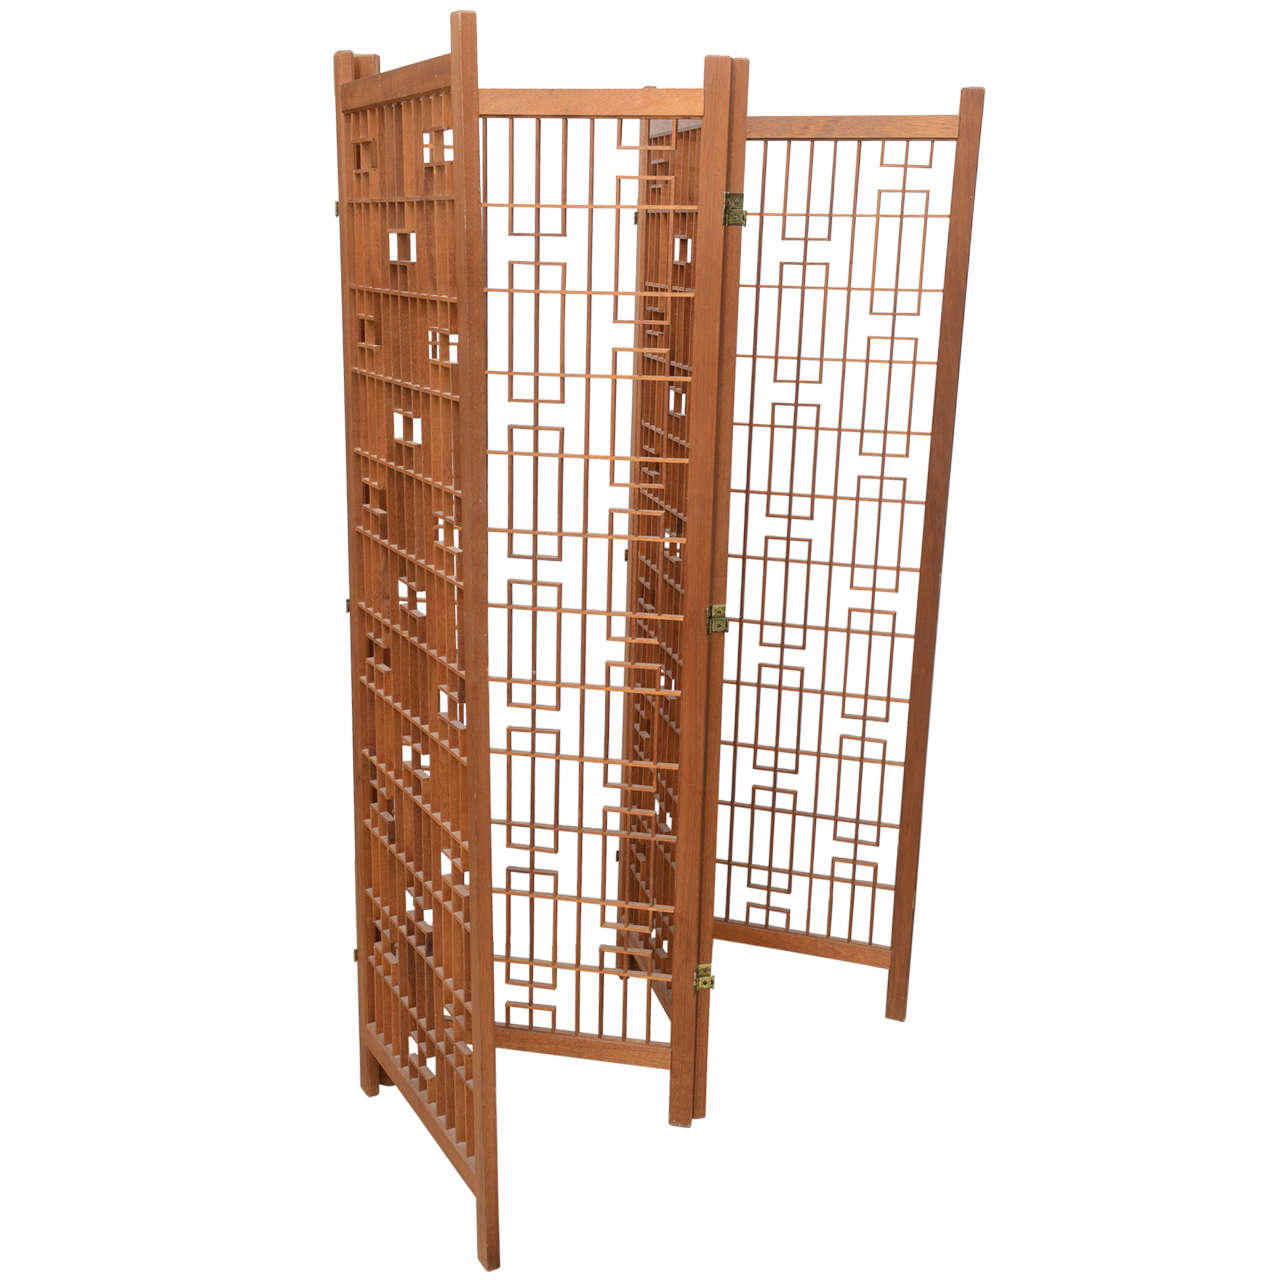 Beautiful Rare Geometric Frank Lloyd Wright Room Divider or Screen